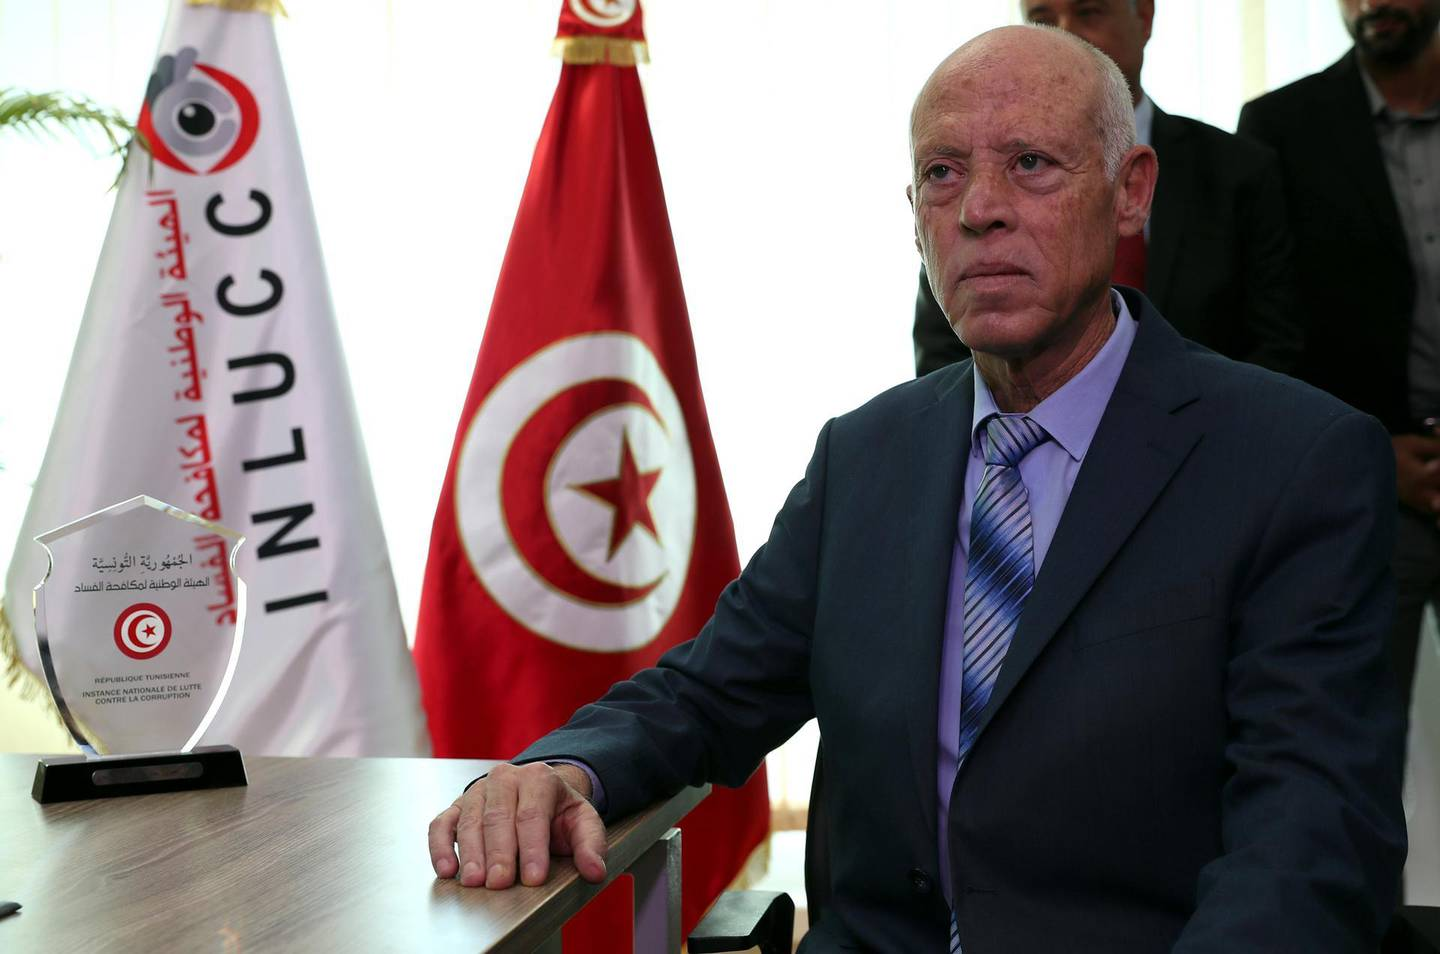 epa07938702 Newly-elected Tunisian President Kais Saied presents statement of his property at the headquarters of the Tunisian anti-corruption authority (INLUCC) in Tunis, Tunisia, 21 October 2019. According to the constitution requirements, Kais Saied declared his property at the anti-corruption authority before taking office on 23 October 2019.  EPA/MOHAMED MESSARA